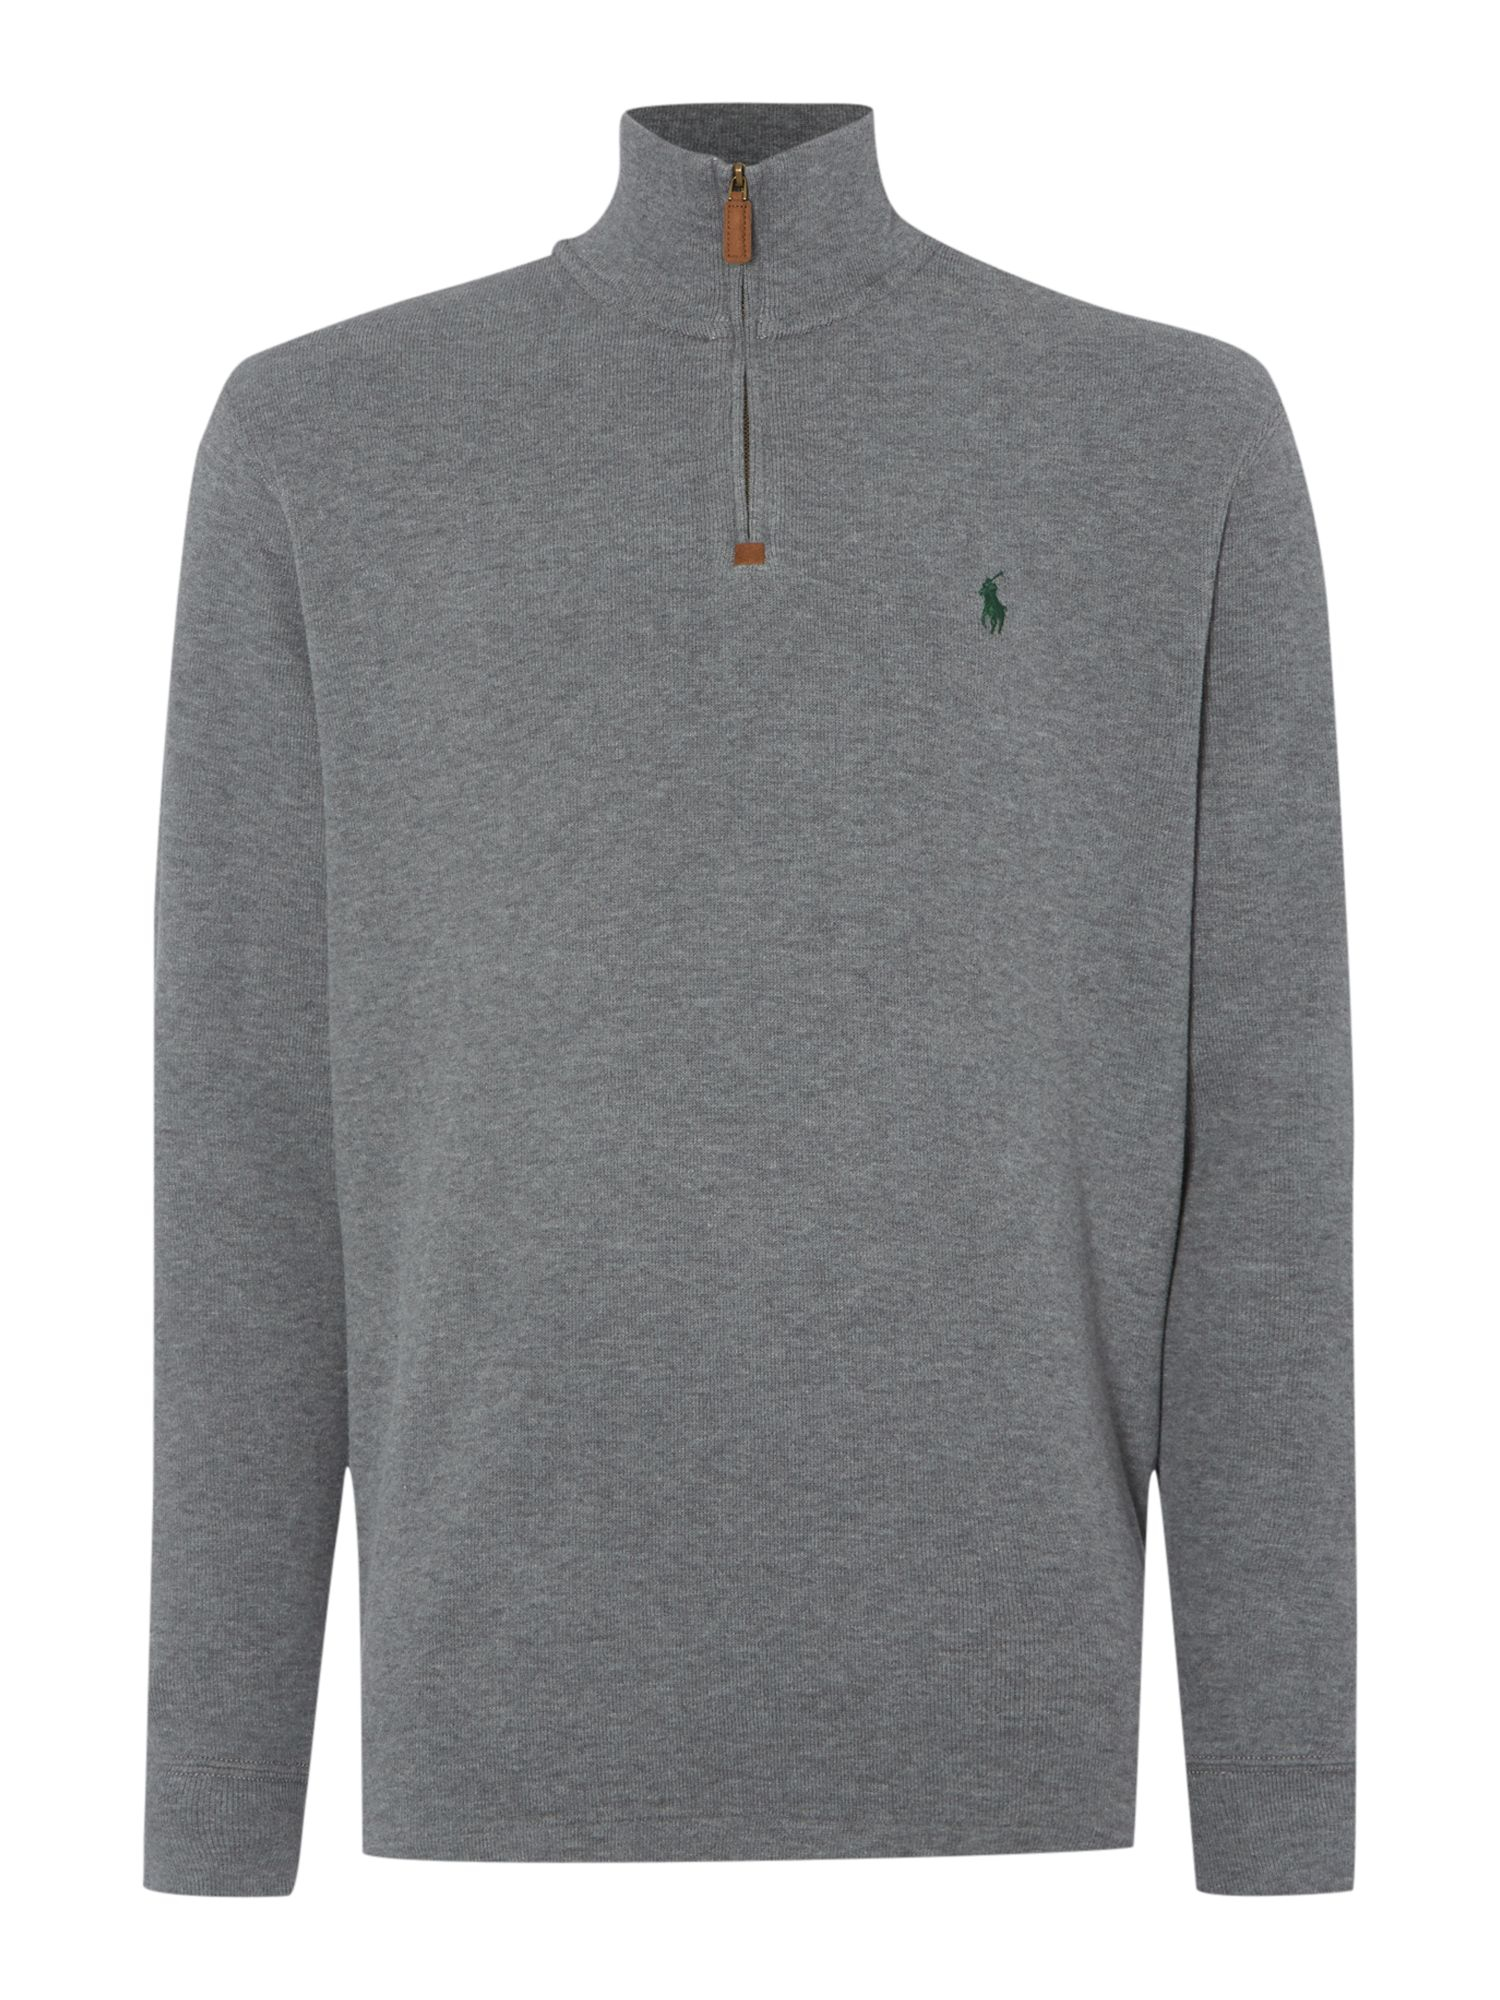 polo ralph lauren half zip sweatshirt in gray for men lyst. Black Bedroom Furniture Sets. Home Design Ideas